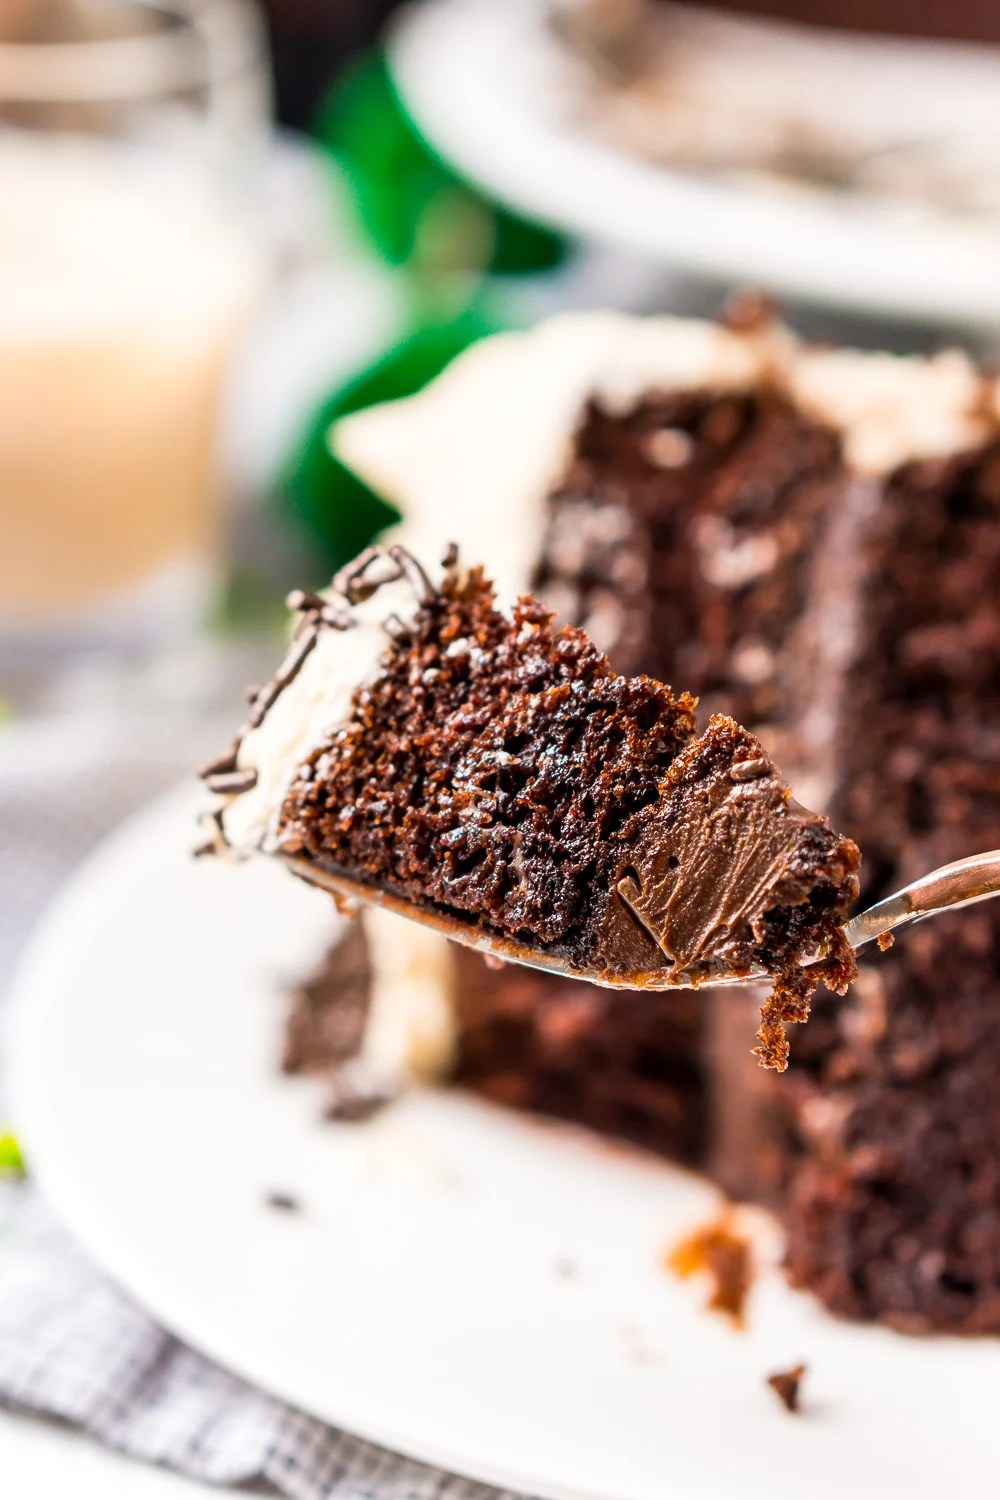 Bite of Chocolate Guinness Cake on a fork with slice of cake in the background.